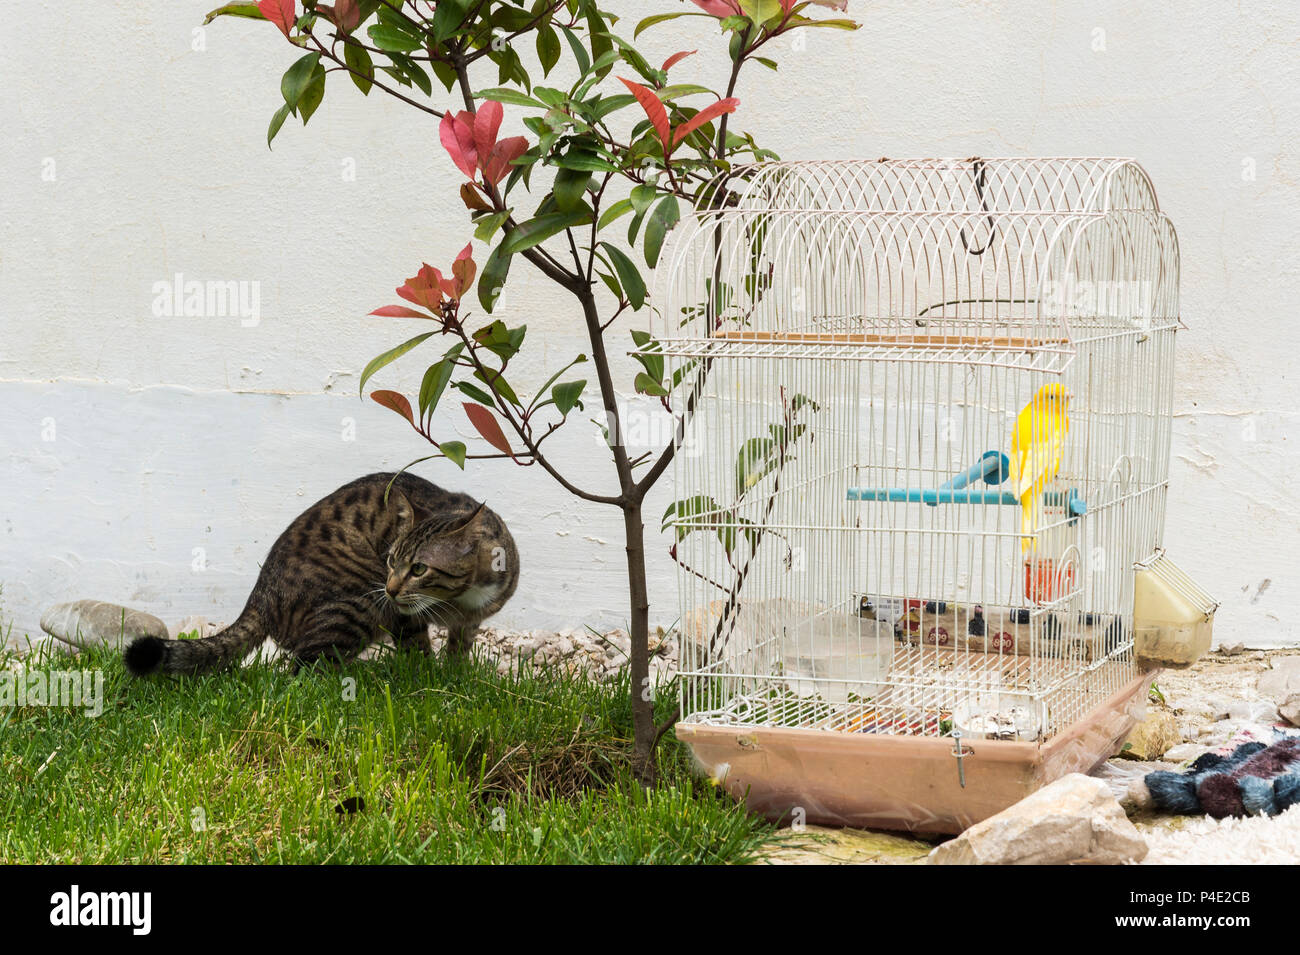 Cat roaming in front of a canary in a cage, Kruje, Albania - Stock Image